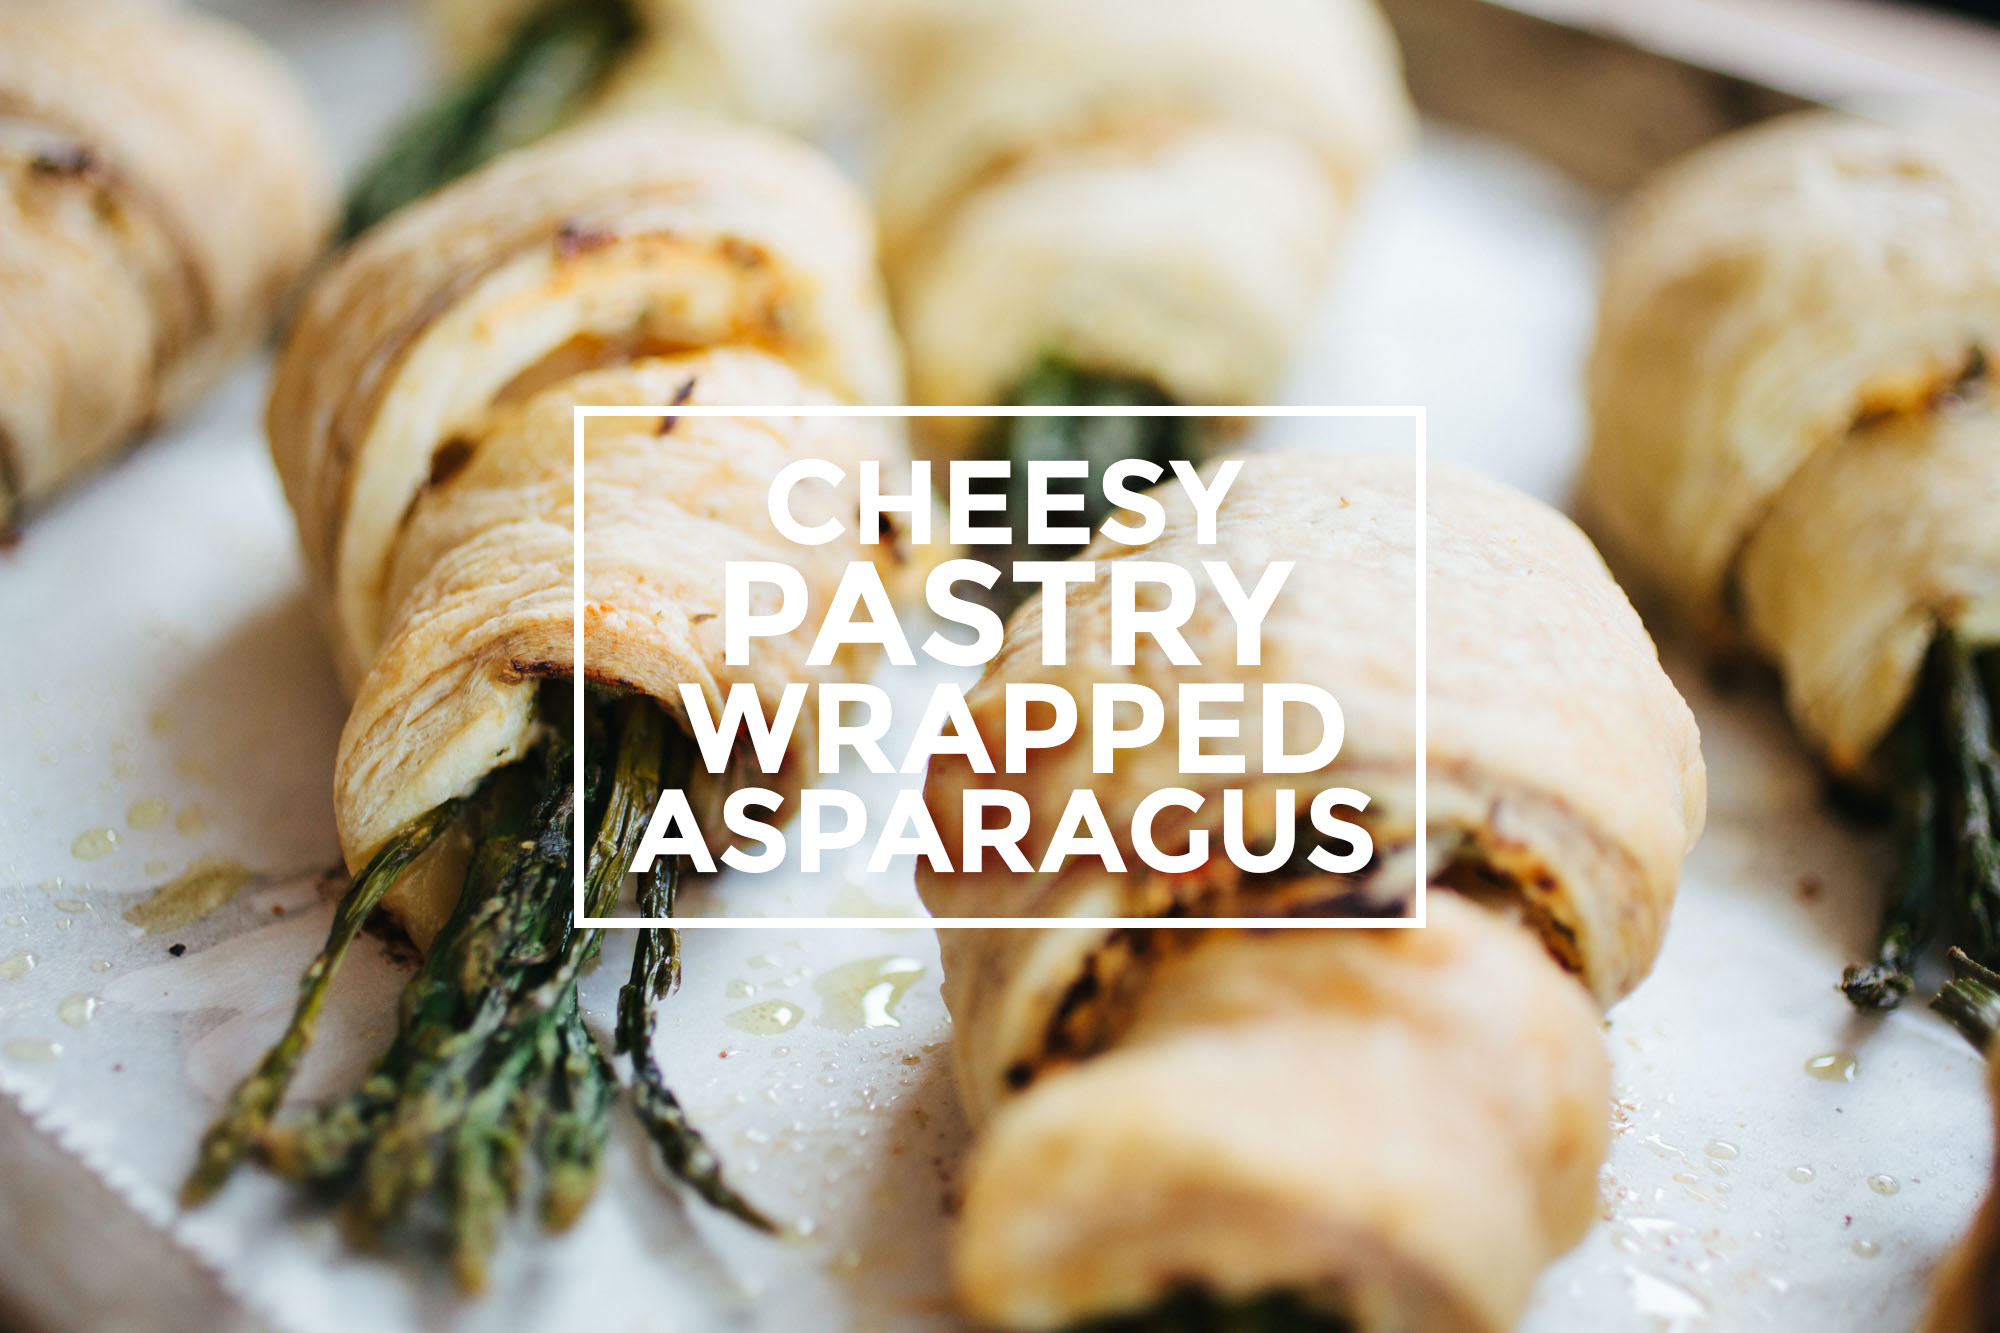 Cheesy Pastry Wrapped Asparagus